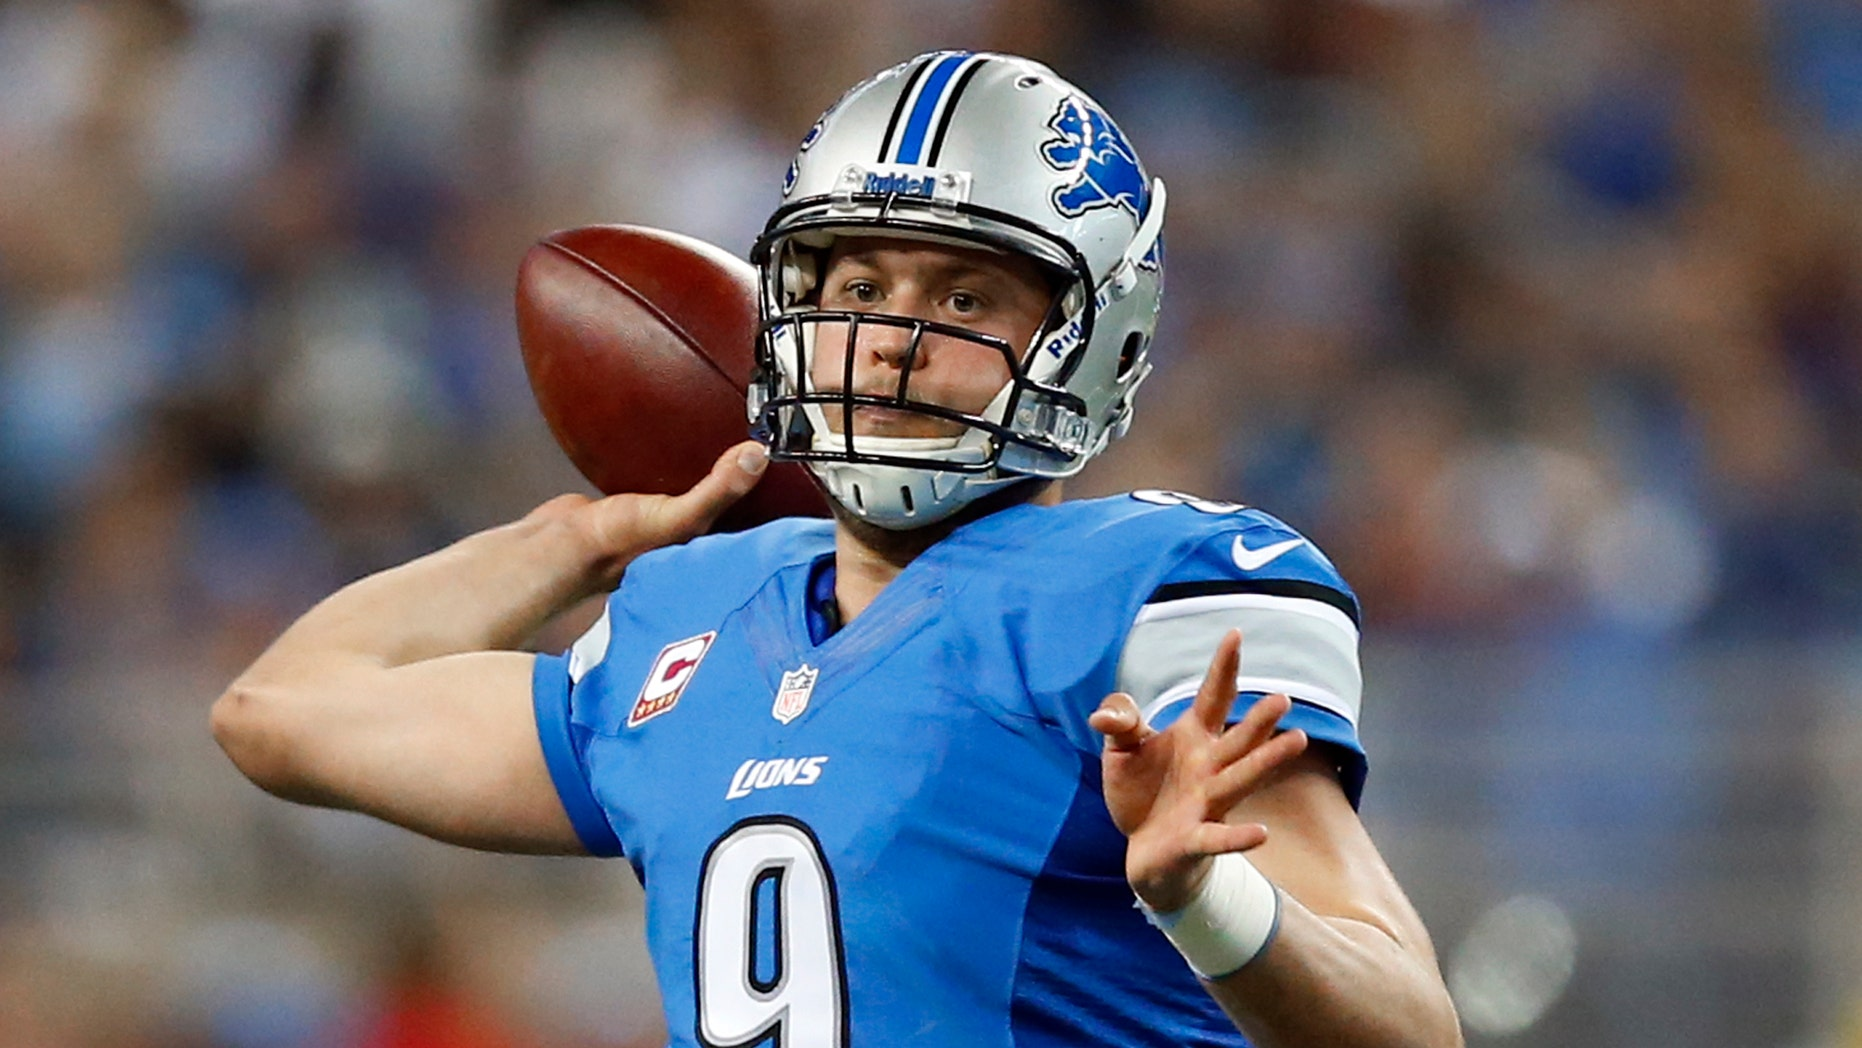 Detroit Lions quarterback Matthew Stafford (9) throws in the first quarter of an NFL football game against the Cincinnati Bengals Sunday, Oct. 20, 2013, in Detroit. (AP Photo/Rick Osentoski)